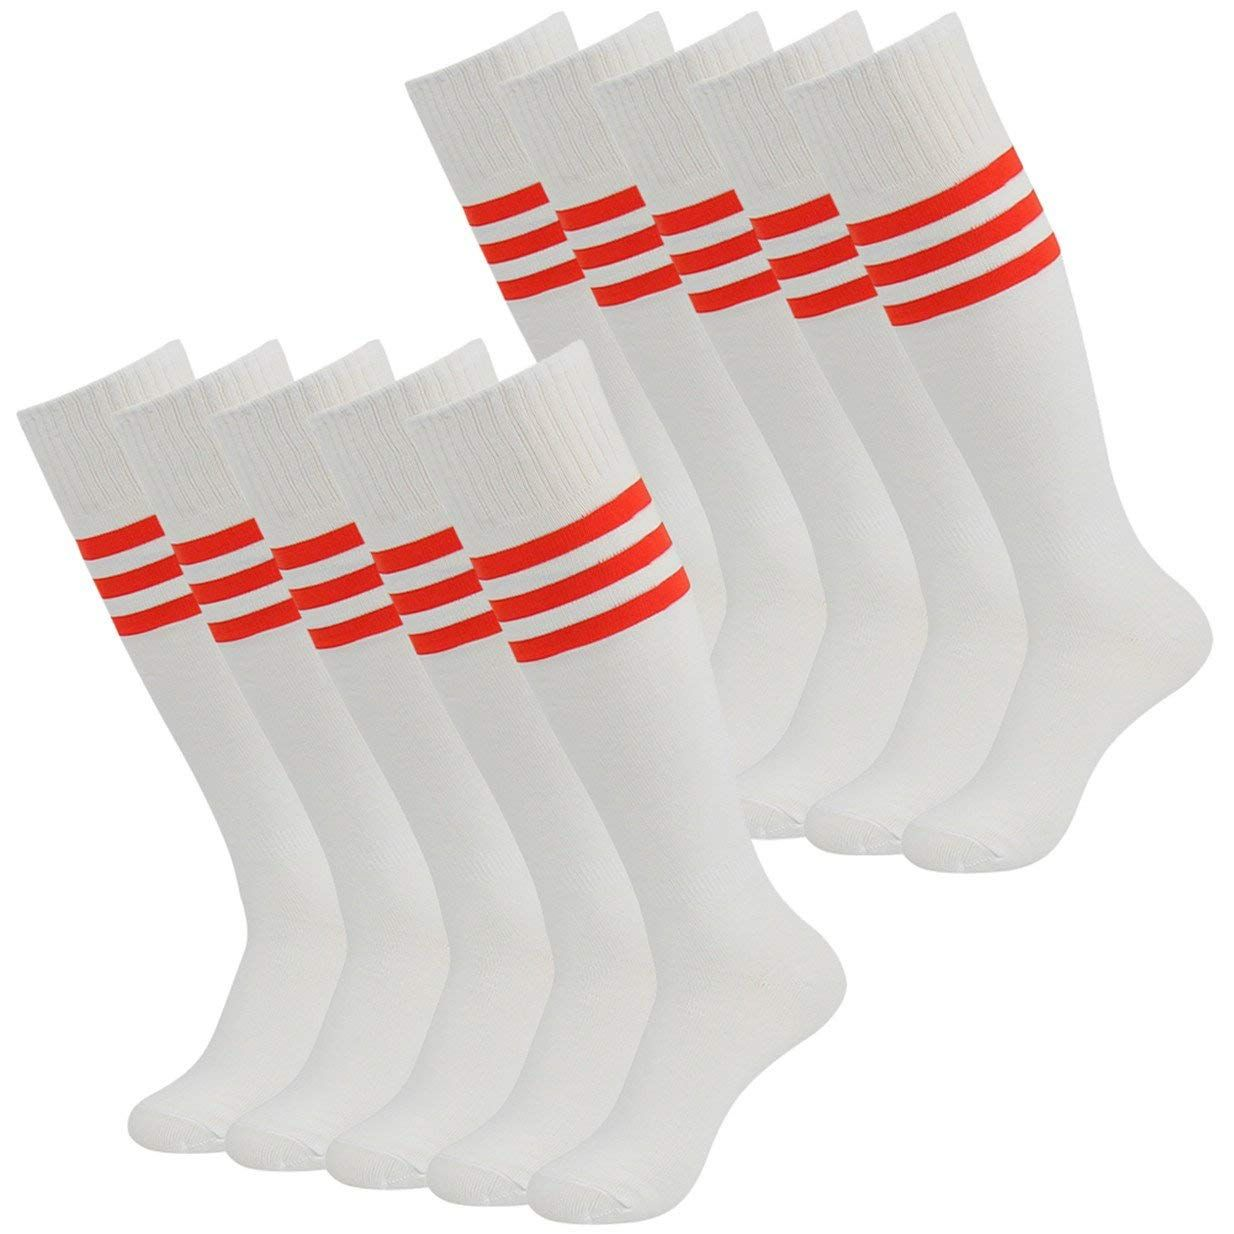 bb32332a6 3street Soccer Baseball Socks, Solid/Striped Knee High Long Tube Football  Game Team Socks 2/6/10 Pairs ** See the photo link even more details.